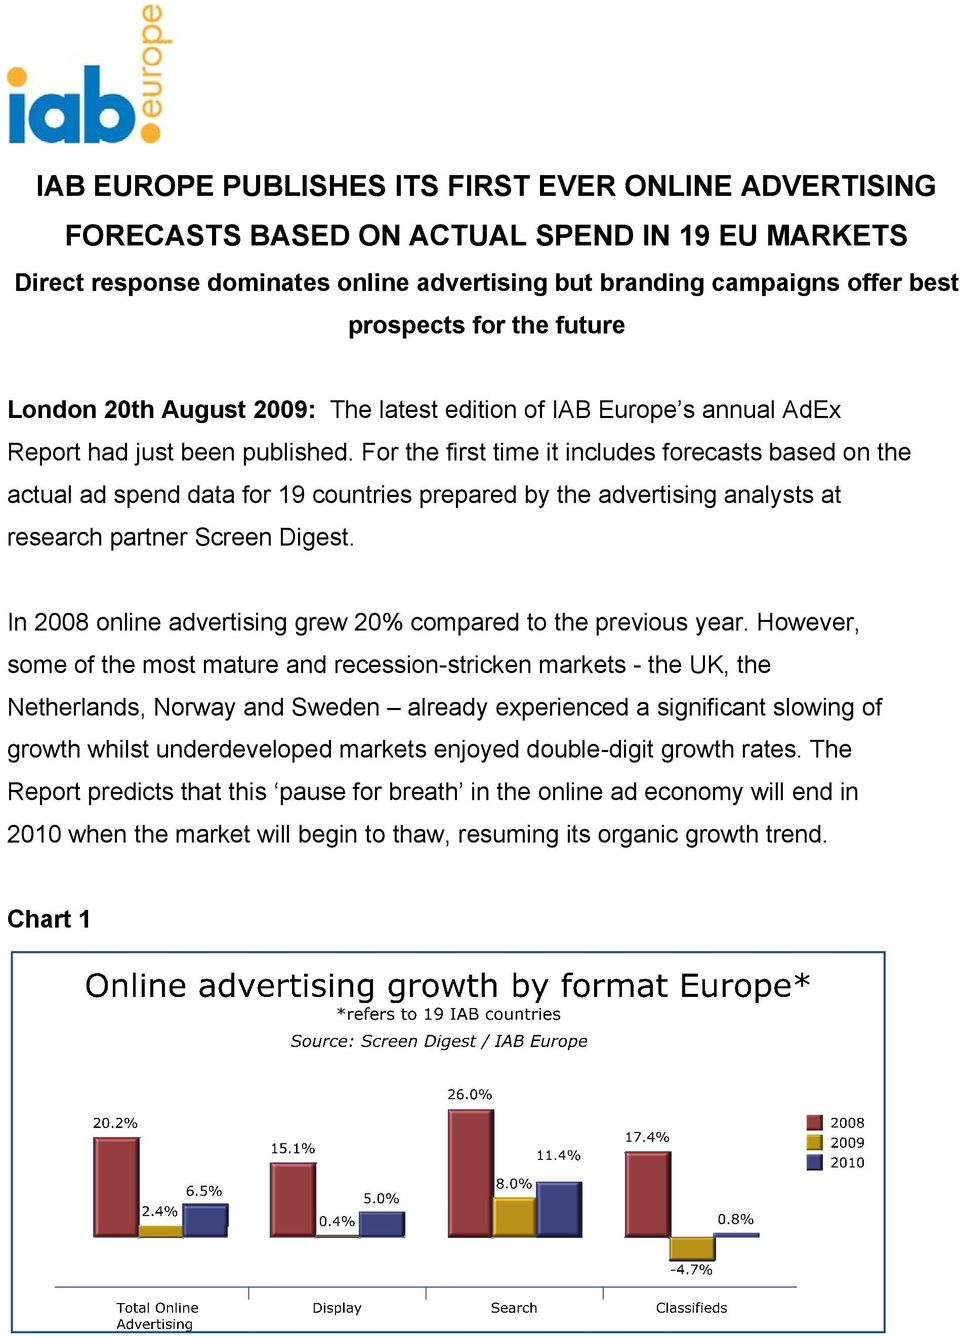 For the first time it includes forecasts based on the actual ad spend data for 19 countries prepared by the advertising analysts at research partner Screen Digest.